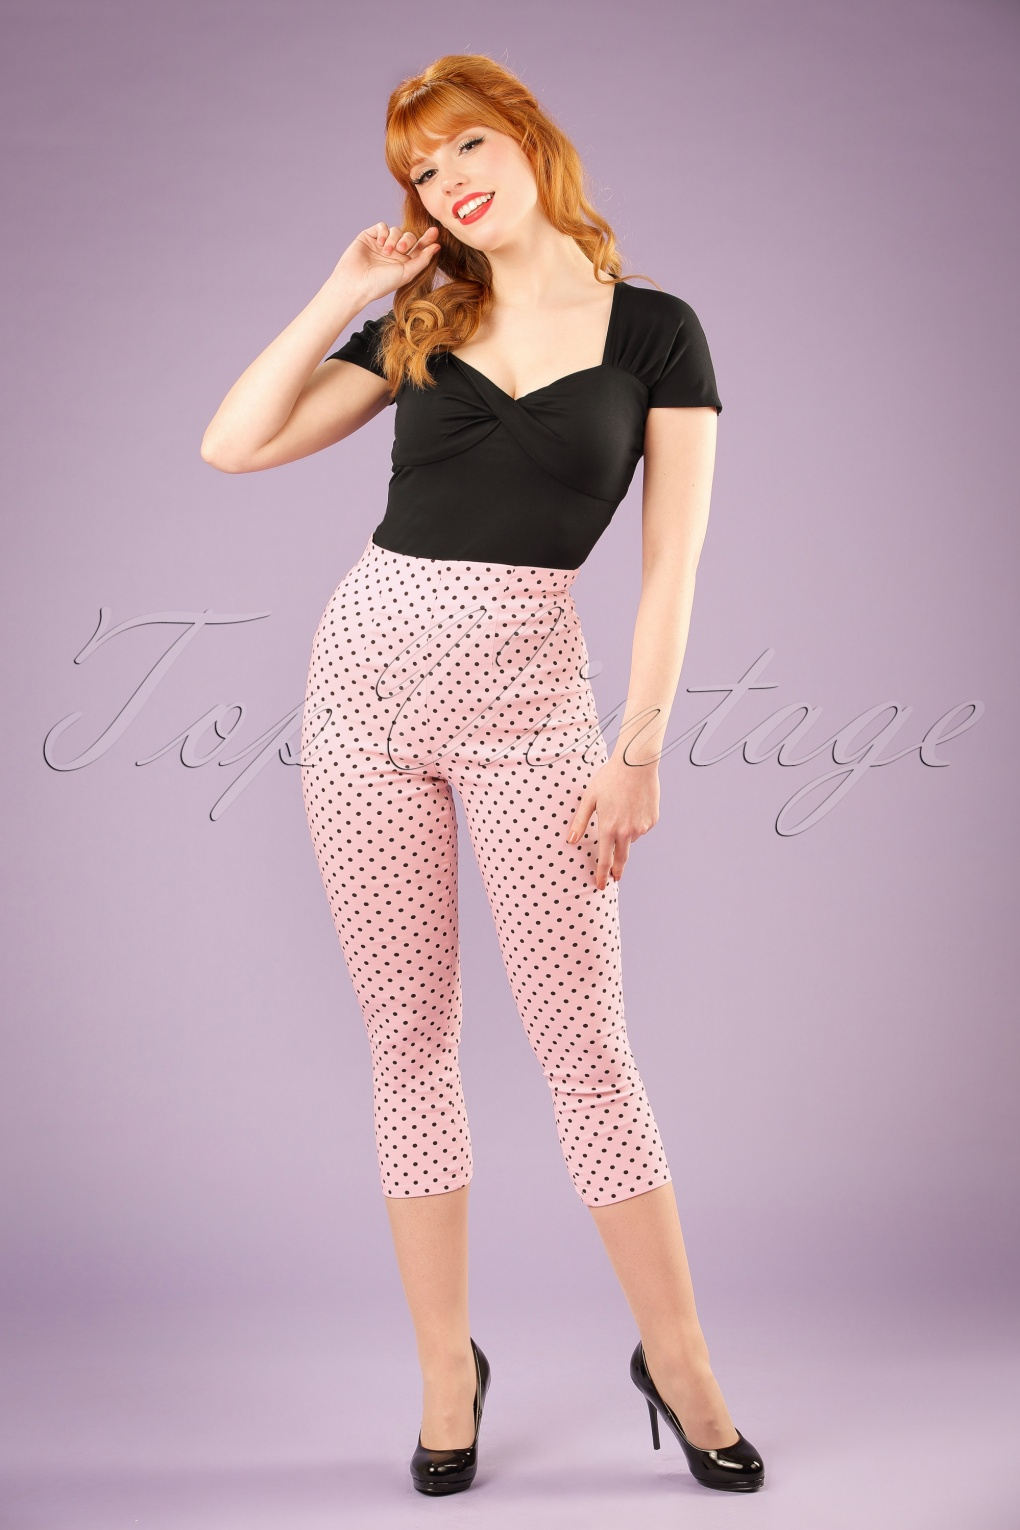 Women's 1960s Style Pants 50s Kay Polkadot Capri Pants in Light Pink £13.33 AT vintagedancer.com